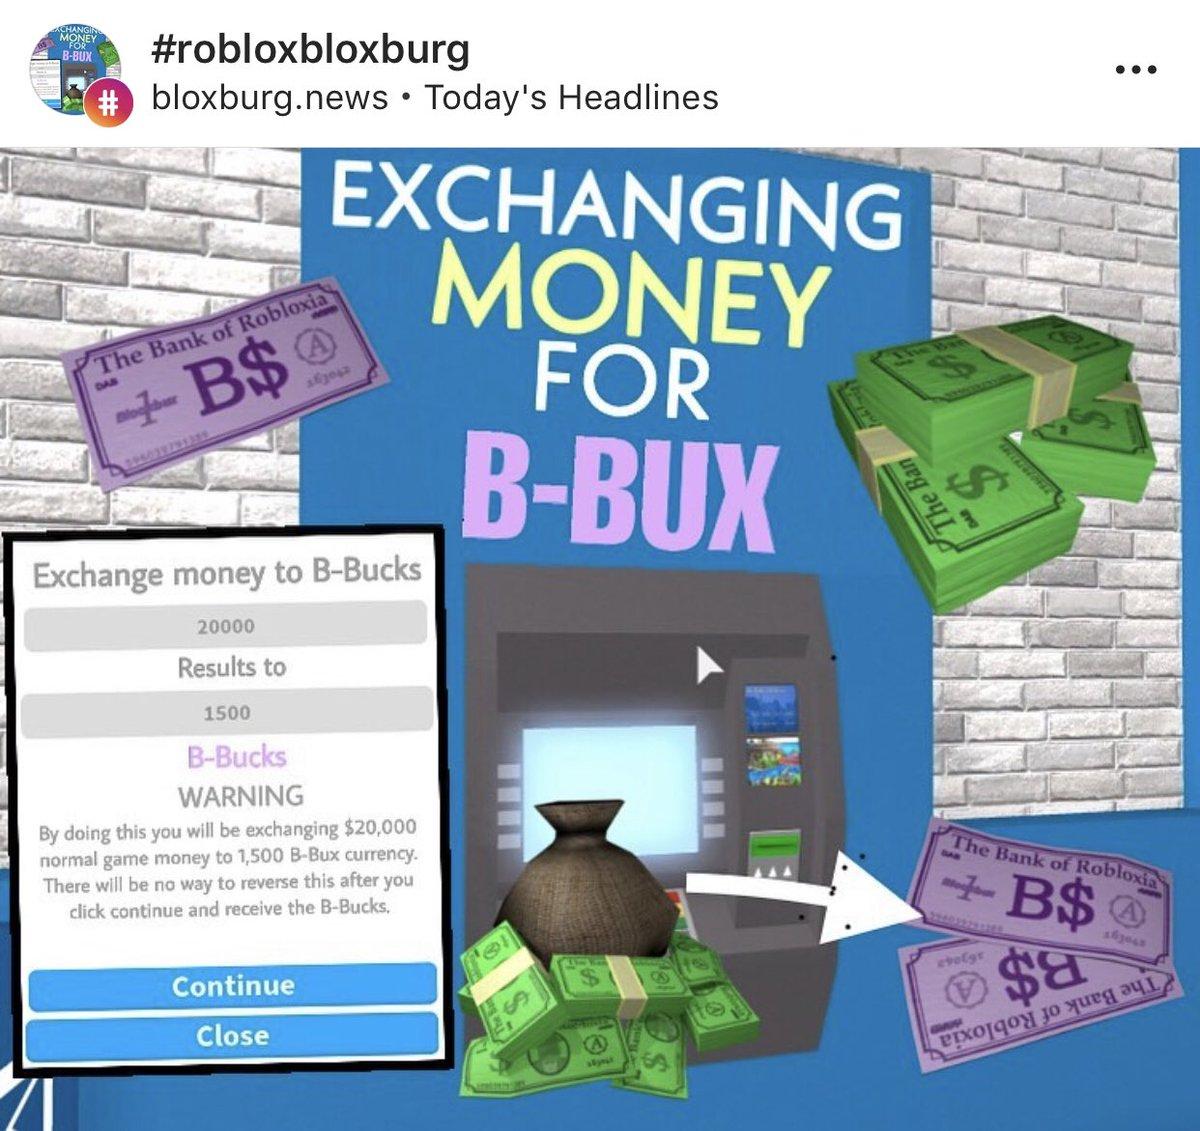 Everything Bloxburg On Twitter Bloxbux Is Meant To Be A Paid